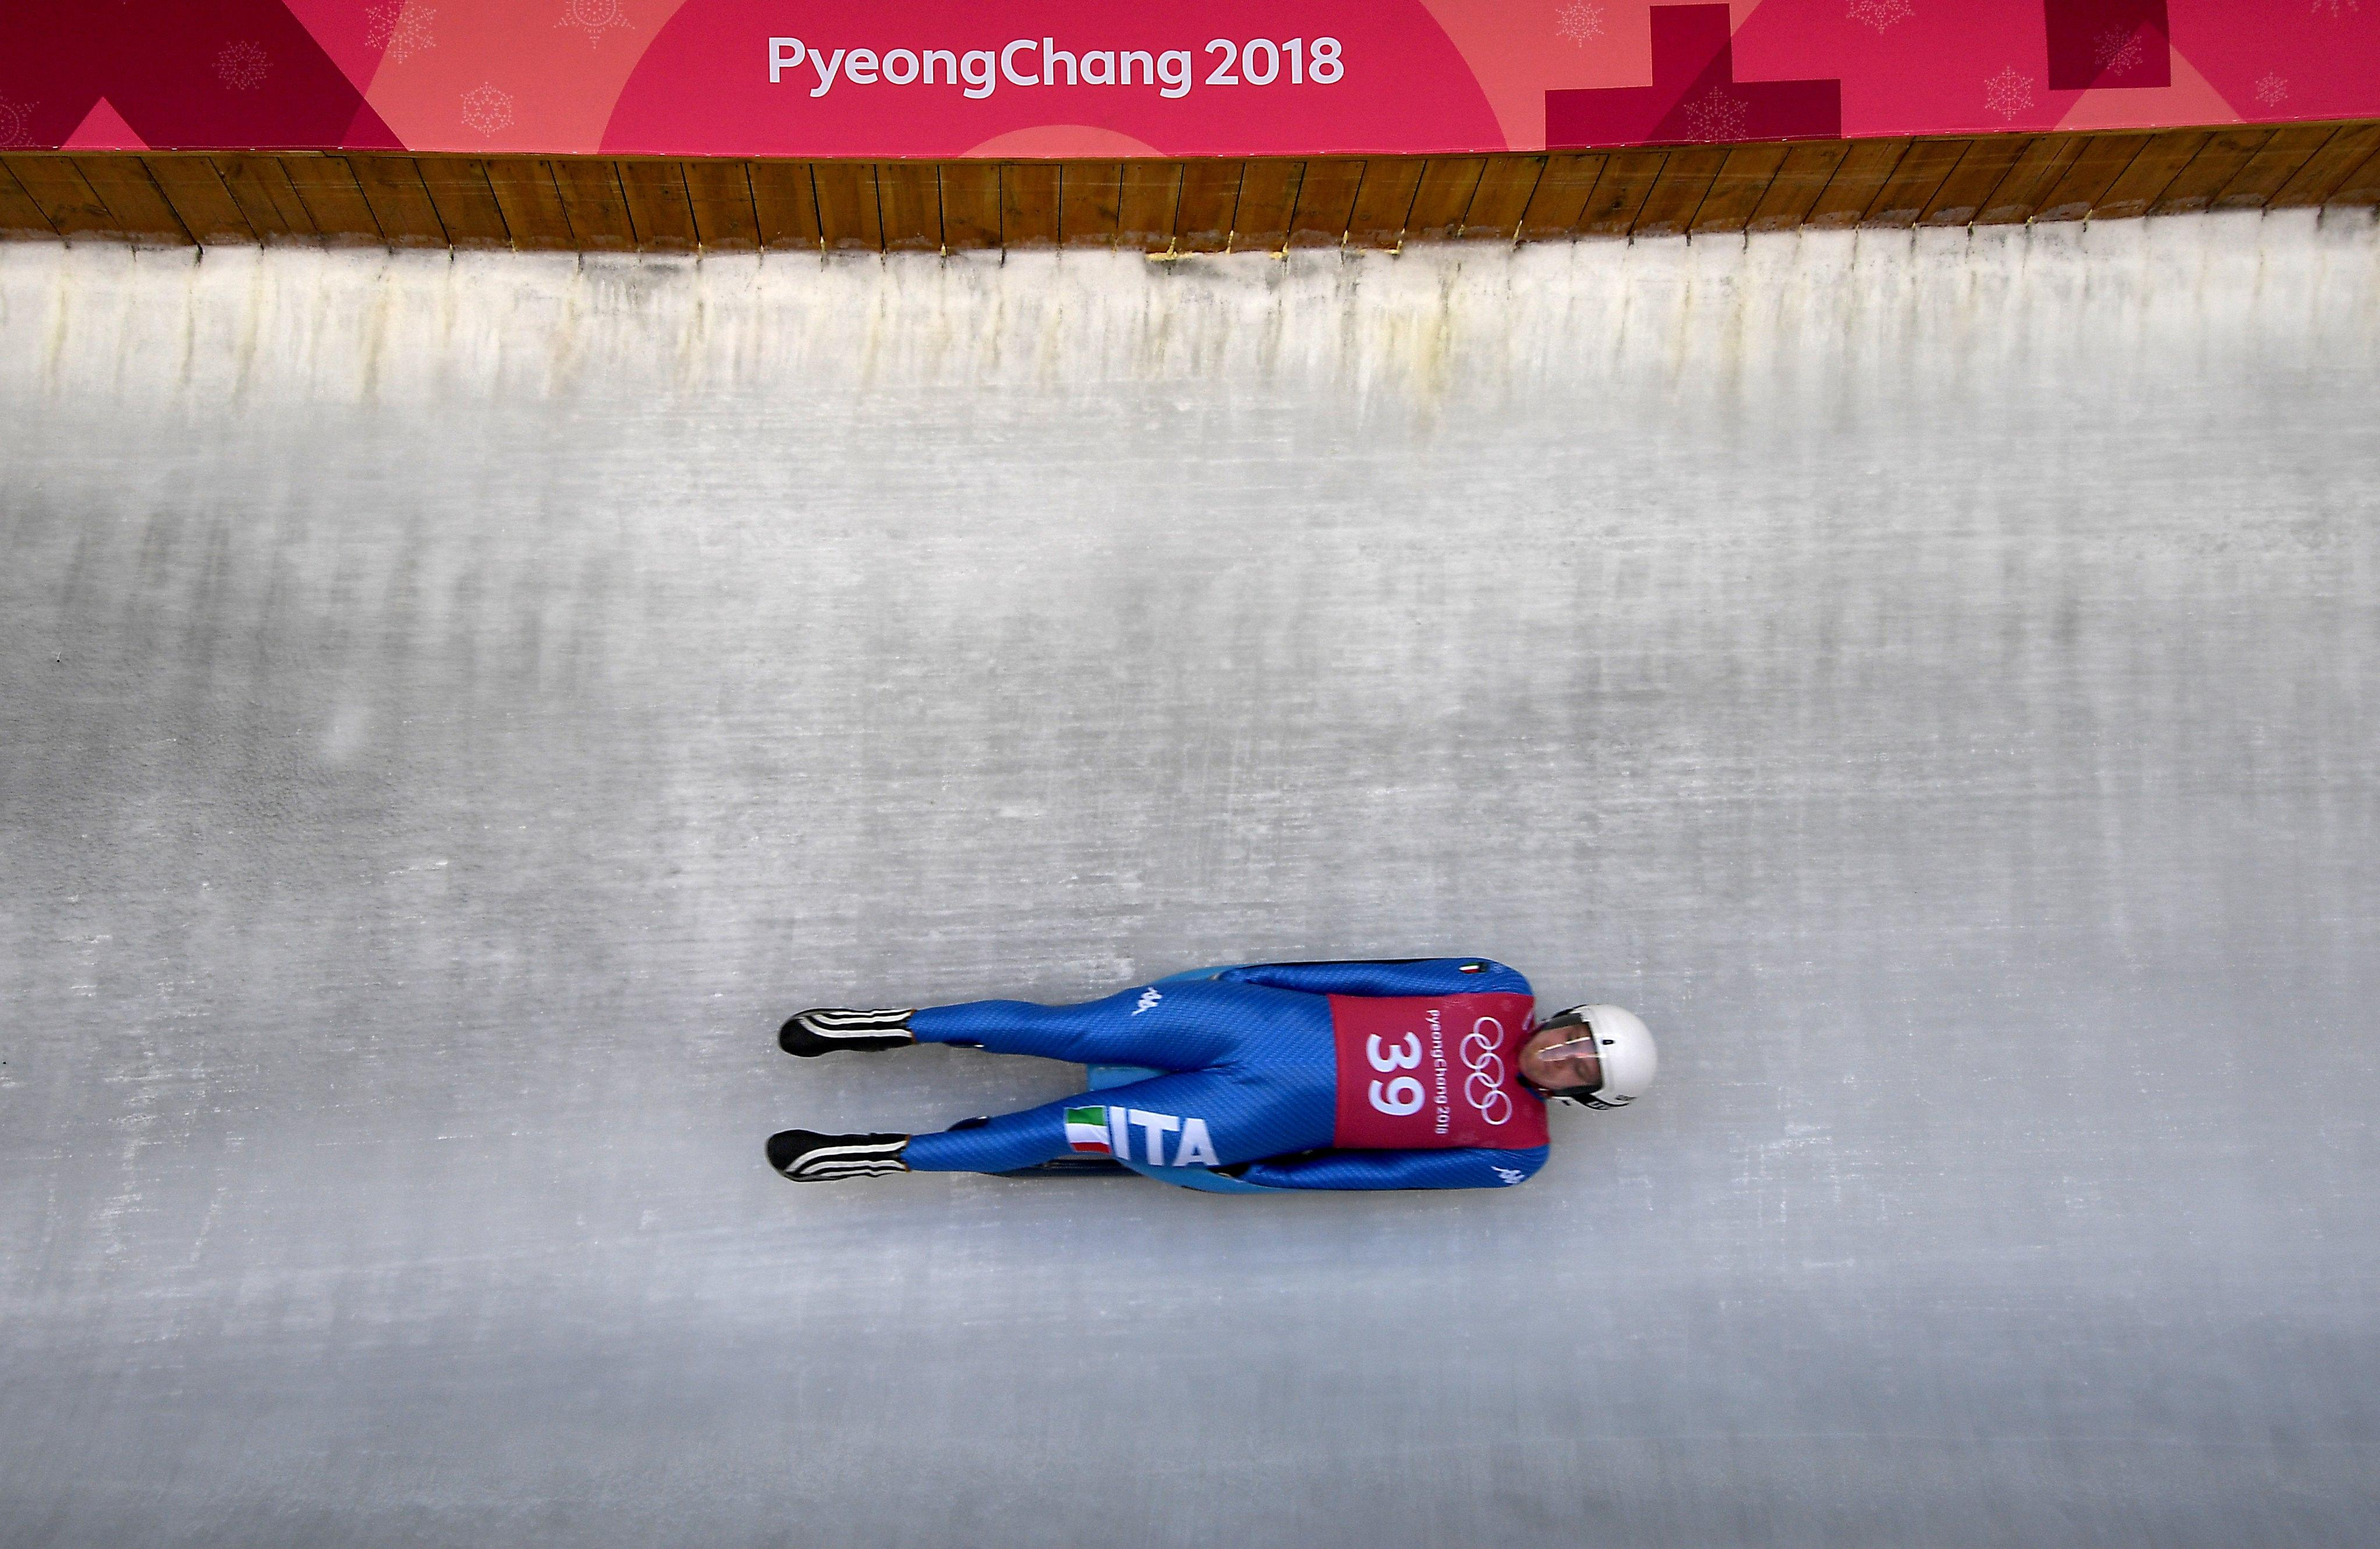 Athletes have been practising on the track in PyeongChang ahead of the heats starting on Saturday